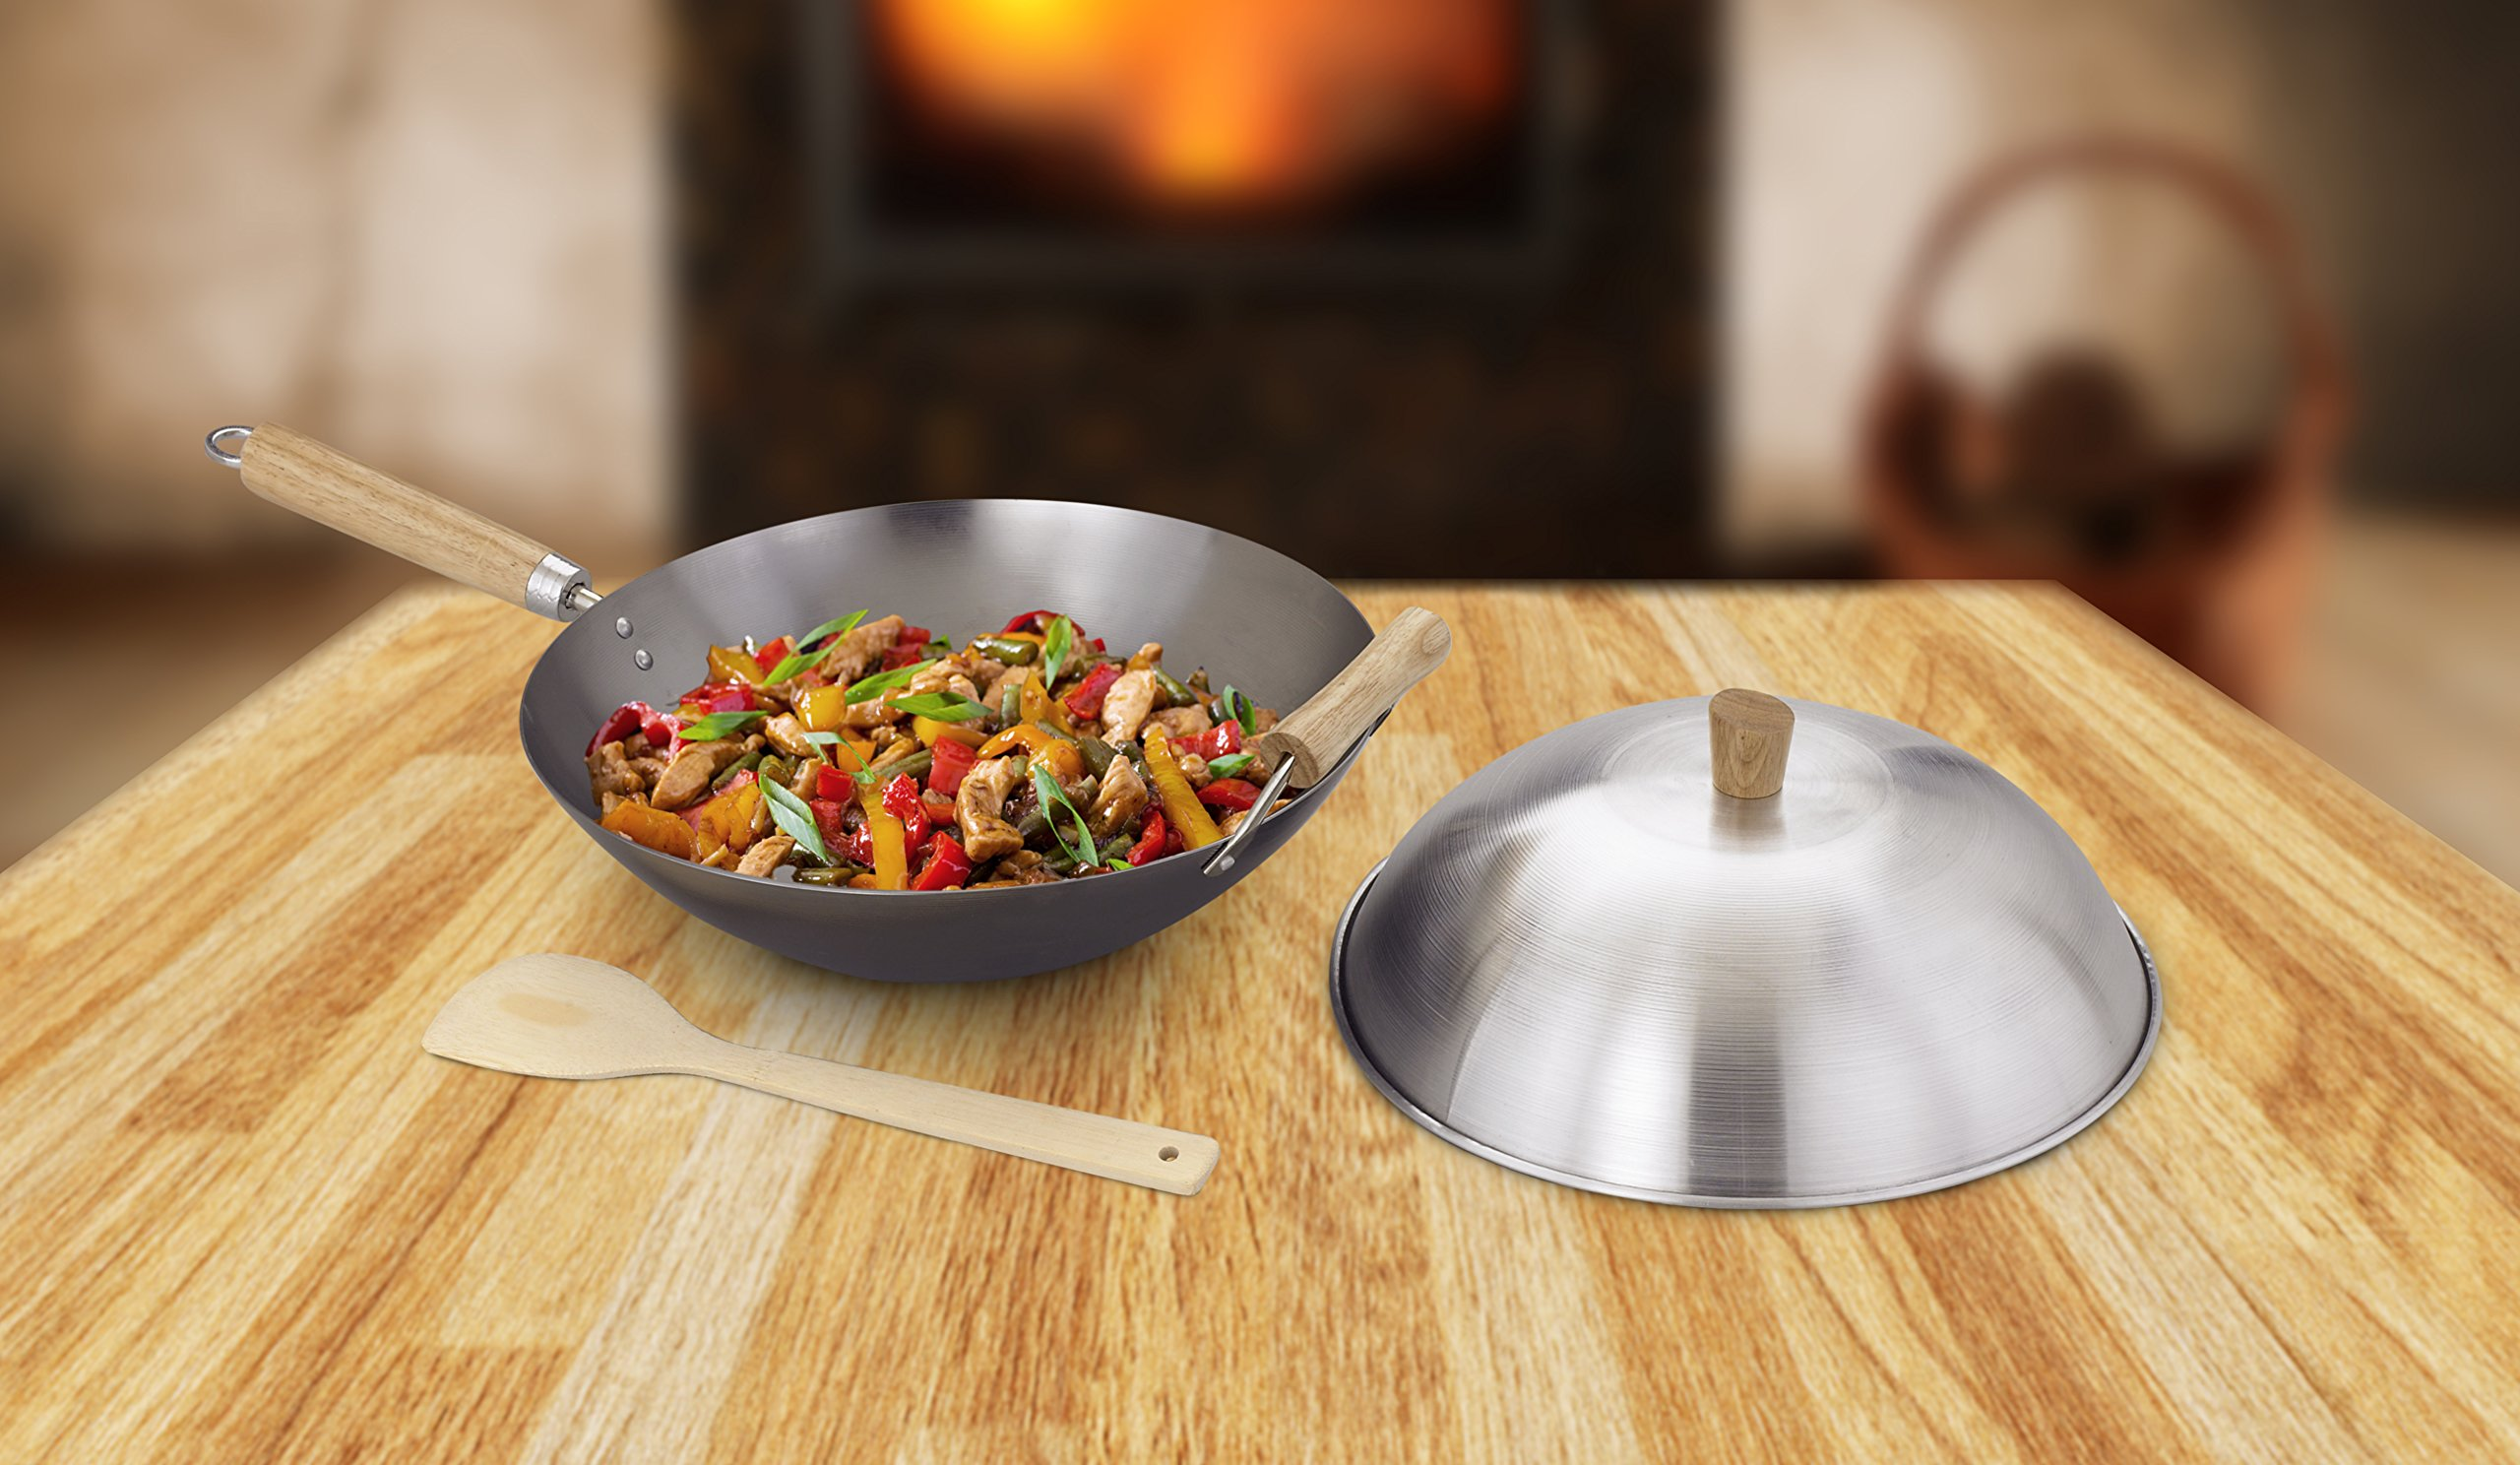 Helen Chen's Asian Kitchen Flat Bottom Wok, Carbon Steel with Lid and Stir Fry Spatula, Recipes Included, 14-inch, 3 Piece Set by Helen's Asian Kitchen (Image #4)